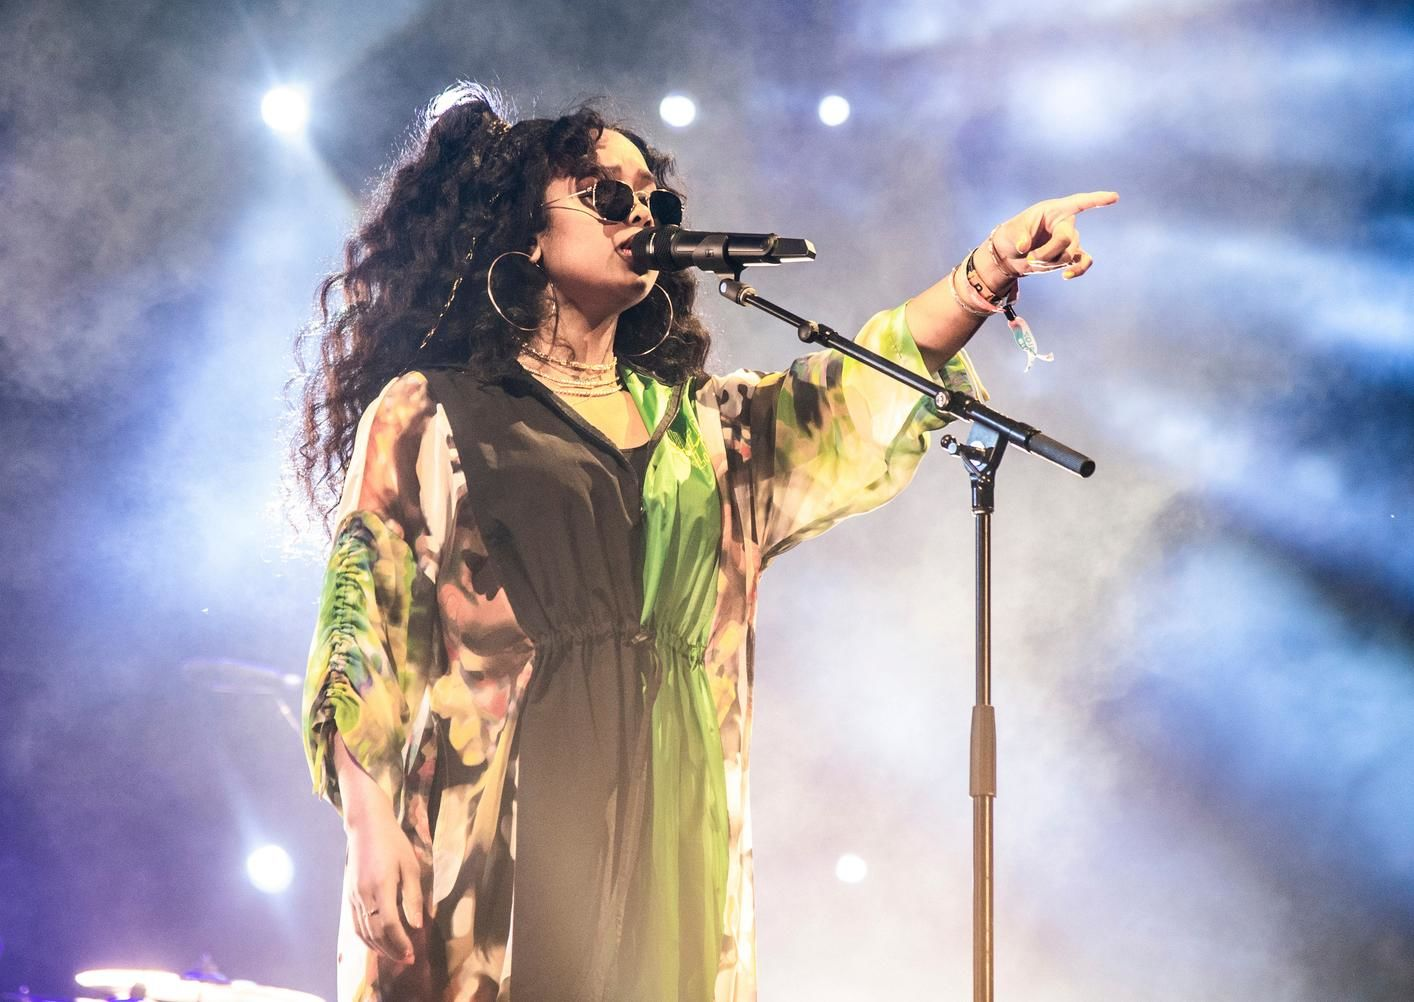 FILE - This April 14, 2019 file photo shows H.E.R. performing at the Coachella Music & Arts Festival in Indio, Calif. H.E.R., who scored five nominations at last year's Grammys, including a bid for best new artist, returns this year with five more nominations. (Photo by Amy Harris/Invision/AP, File)